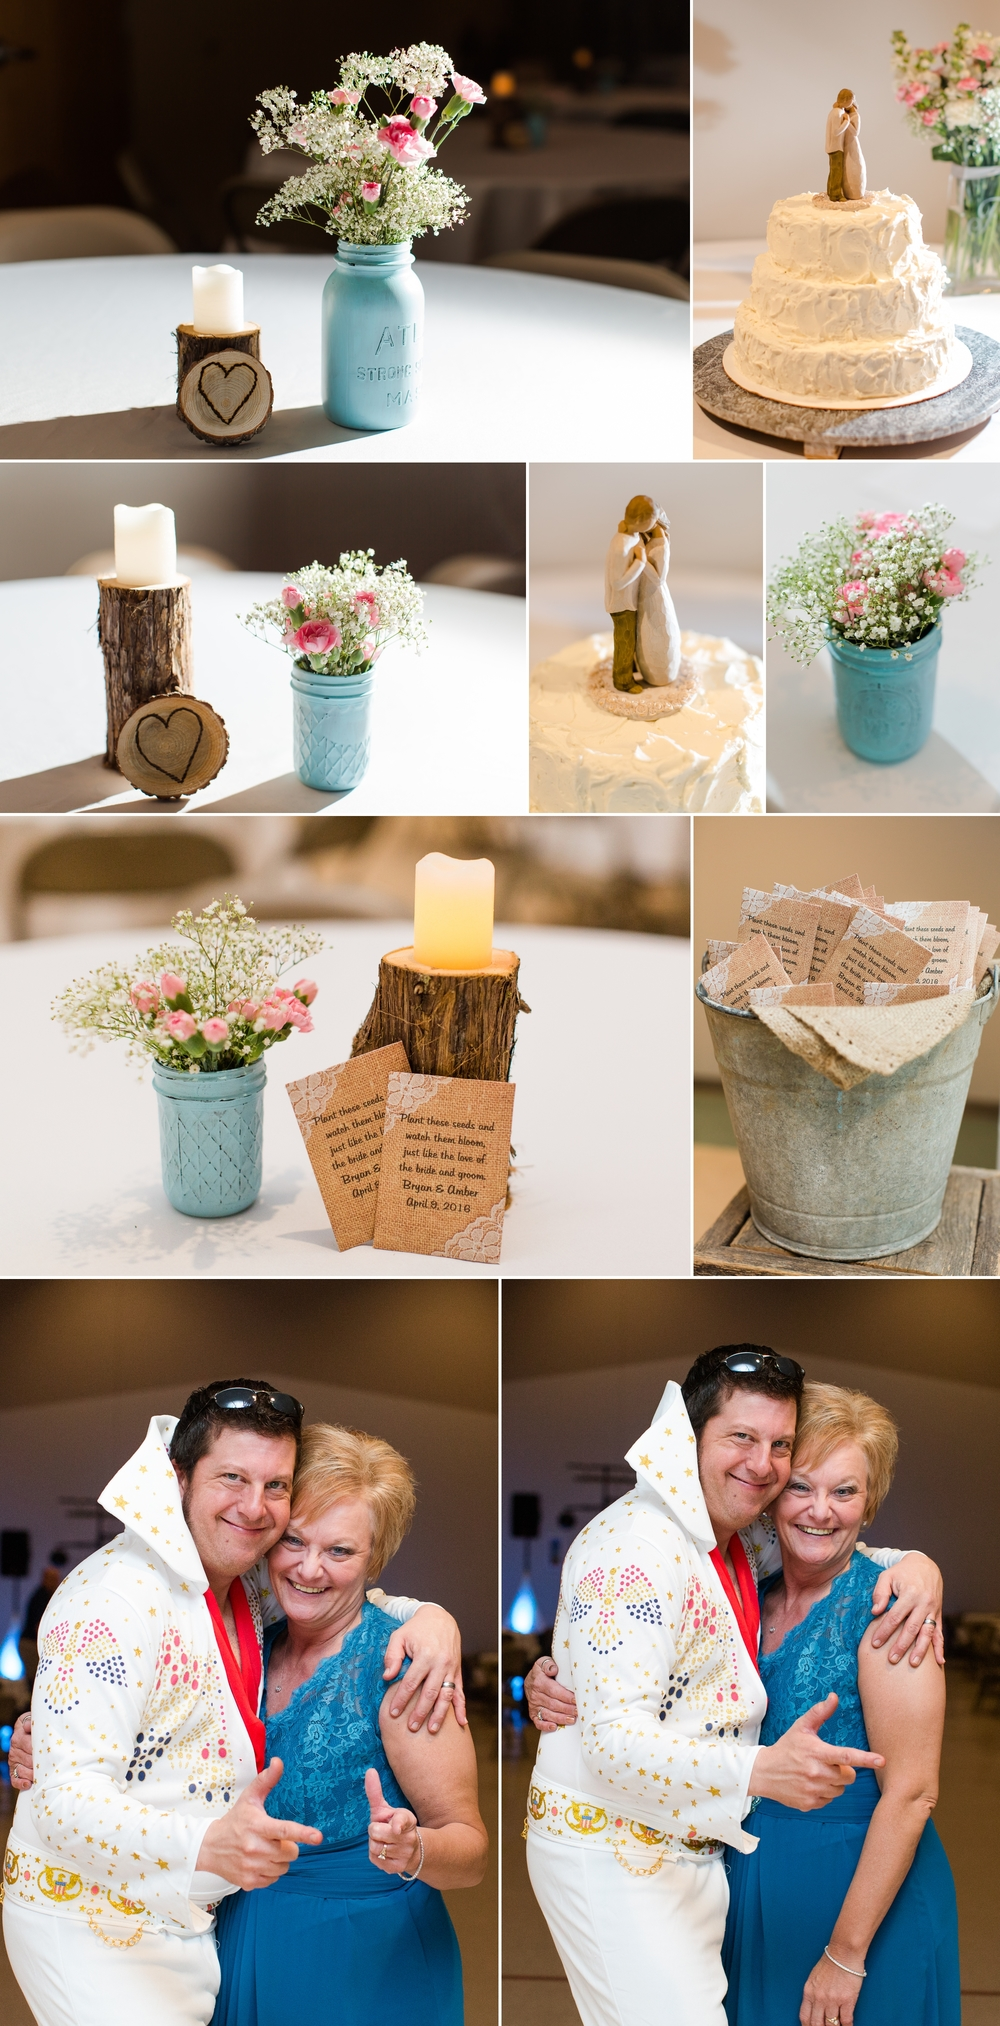 winery_wedding_photography_stl_st_louis_spring_april_poses 11.jpg